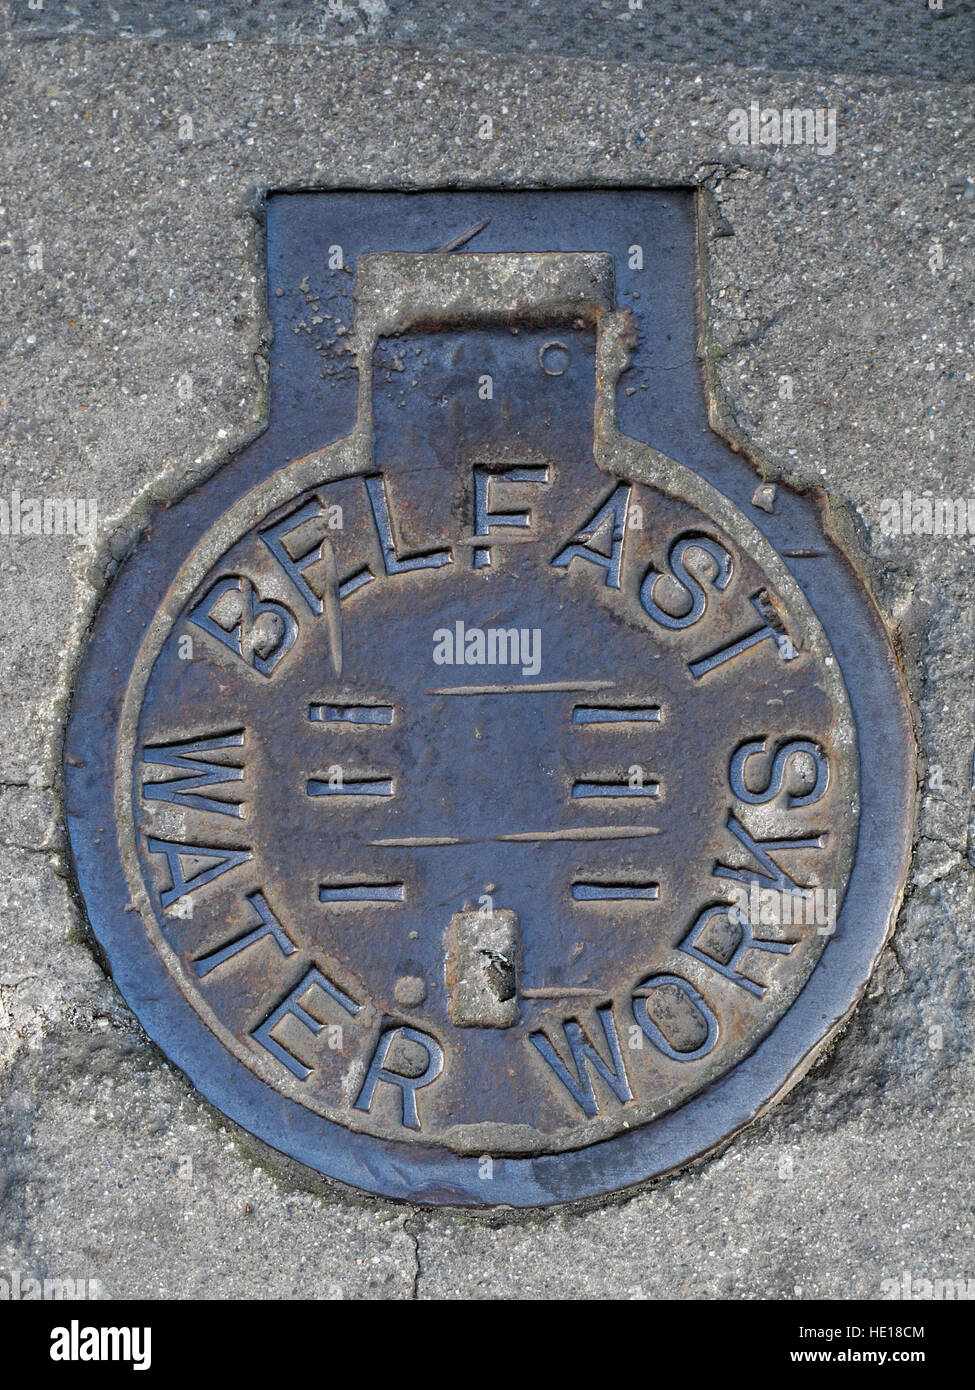 Belfast Water Works Cast Iron Manhole Grid, Northern Ireland, UK - Stock Image